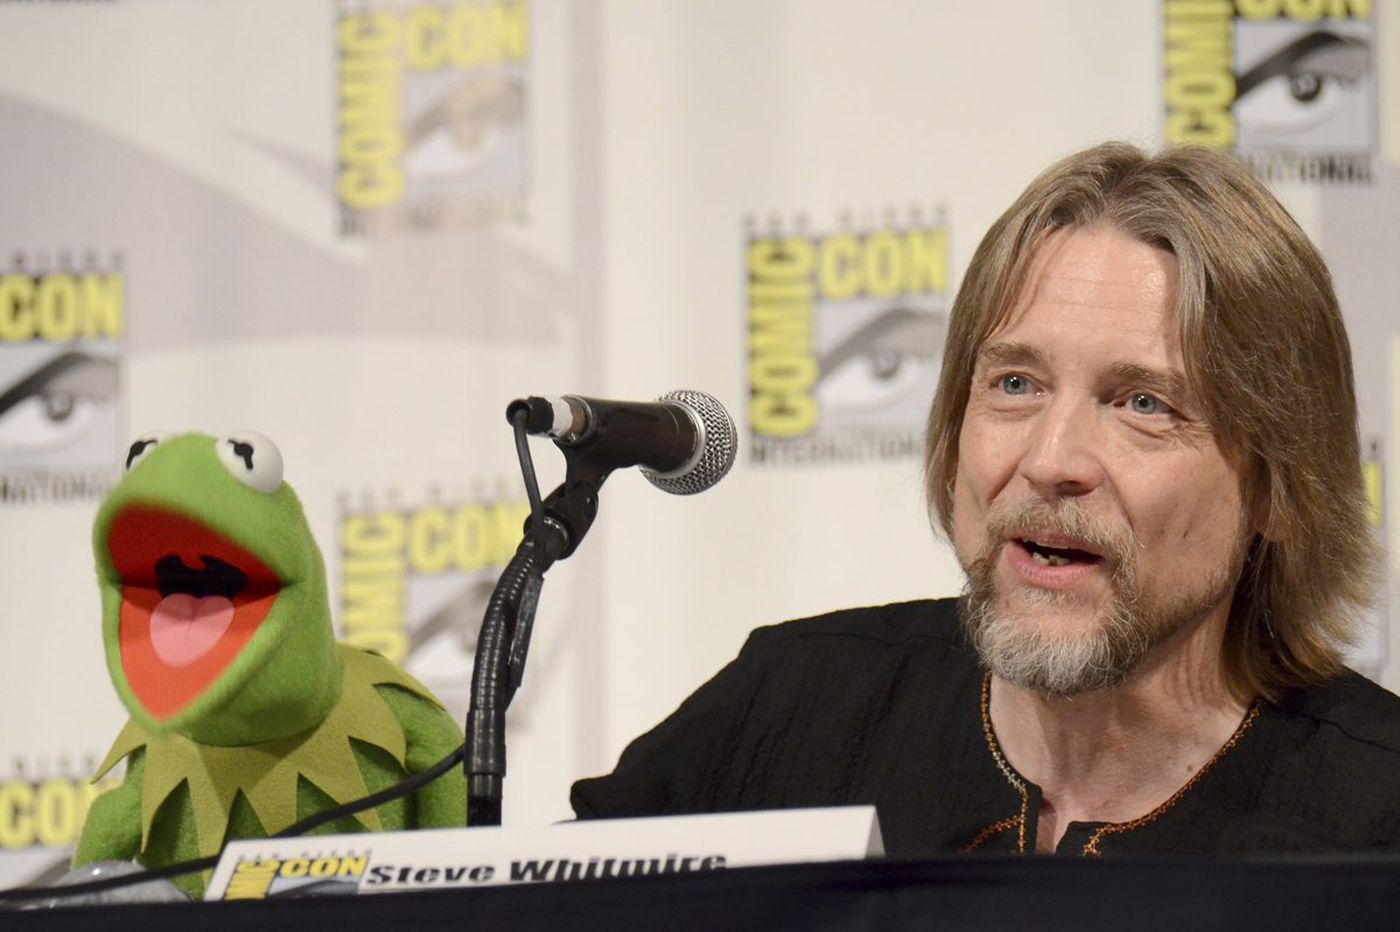 The longtime voice of Kermit the Frog has been fired, and he's 'devastated'